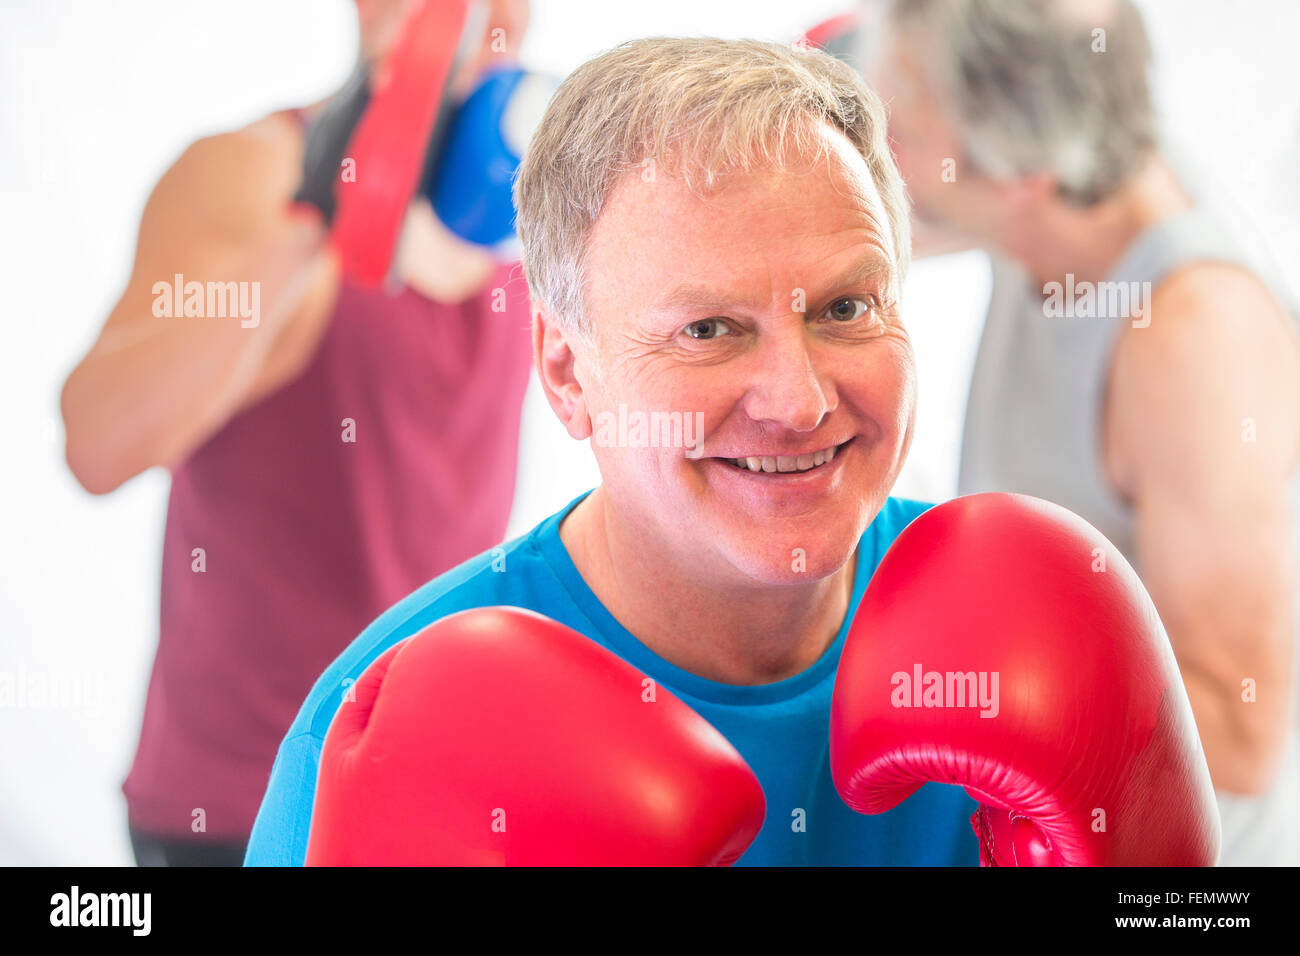 Senior man posing posing in a fighting stance with boxing gloves - Stock Image